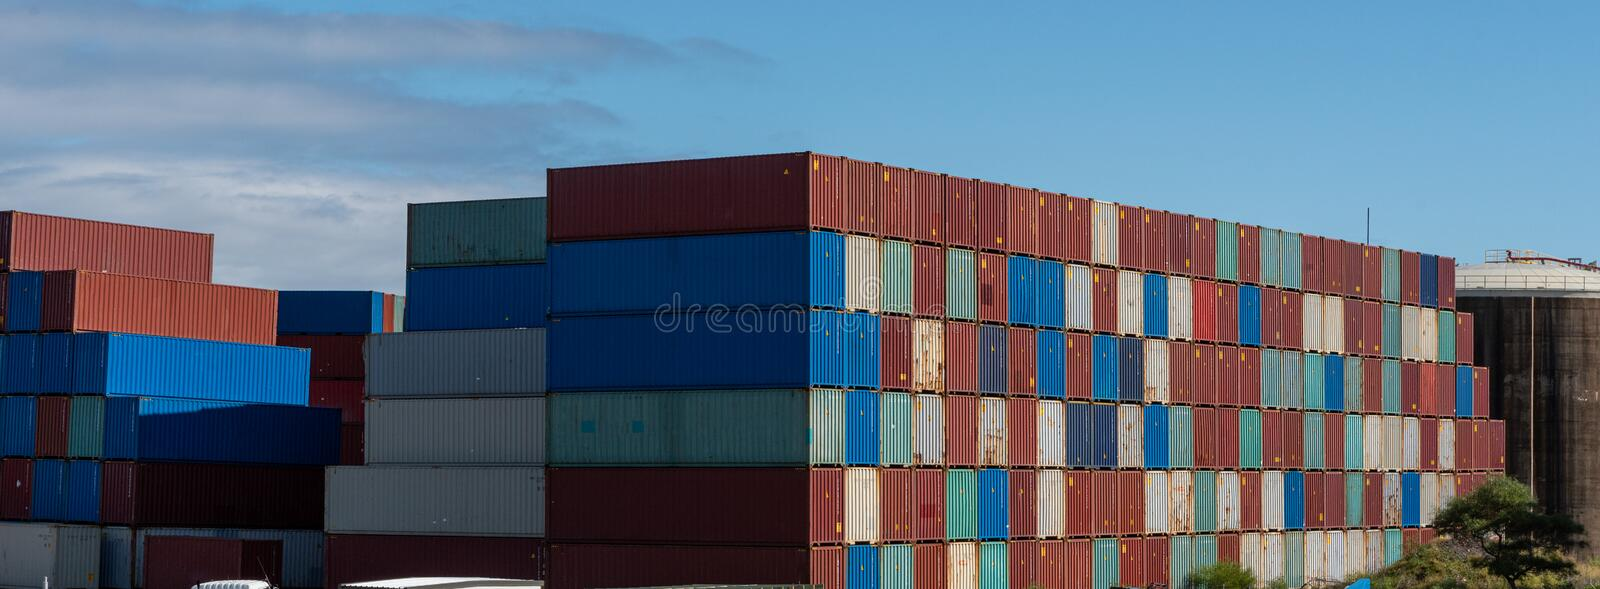 Shipping container storage yard on a sunny day stock images